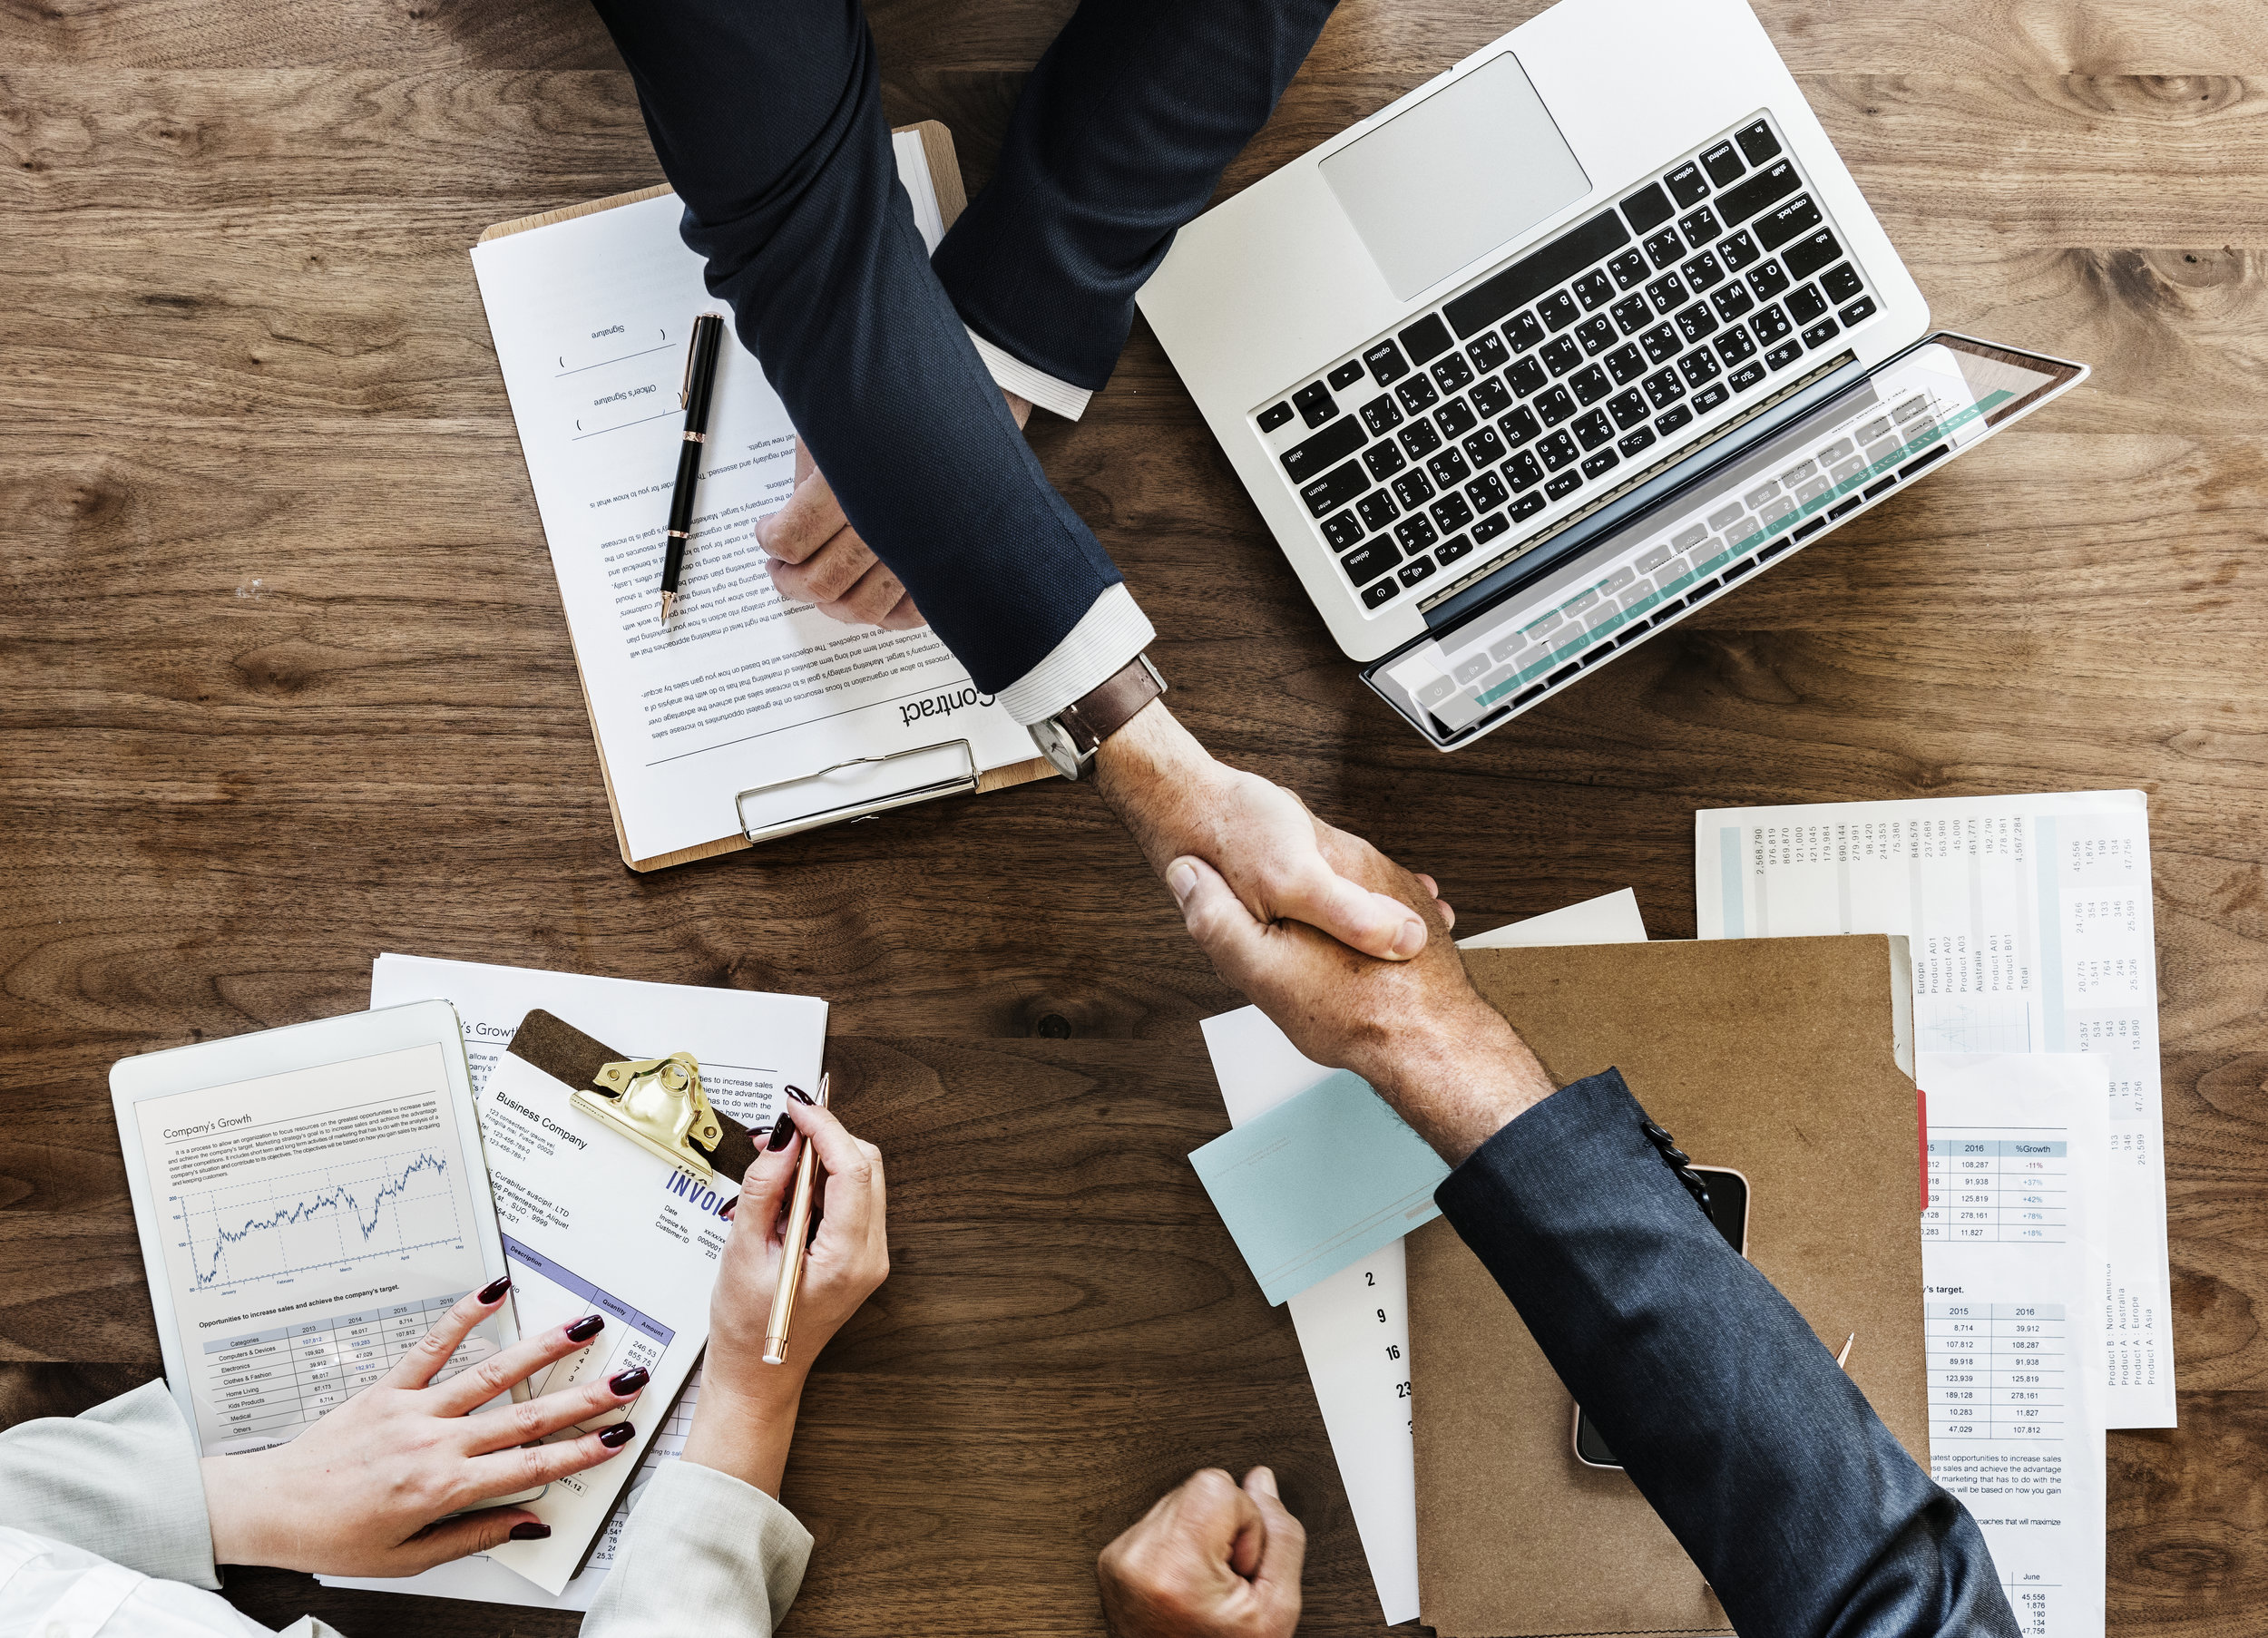 BSH will deliver strategic connections - We will connect you to our extensive network of businesses and contacts to create synergies, partnerships and lasting connections.